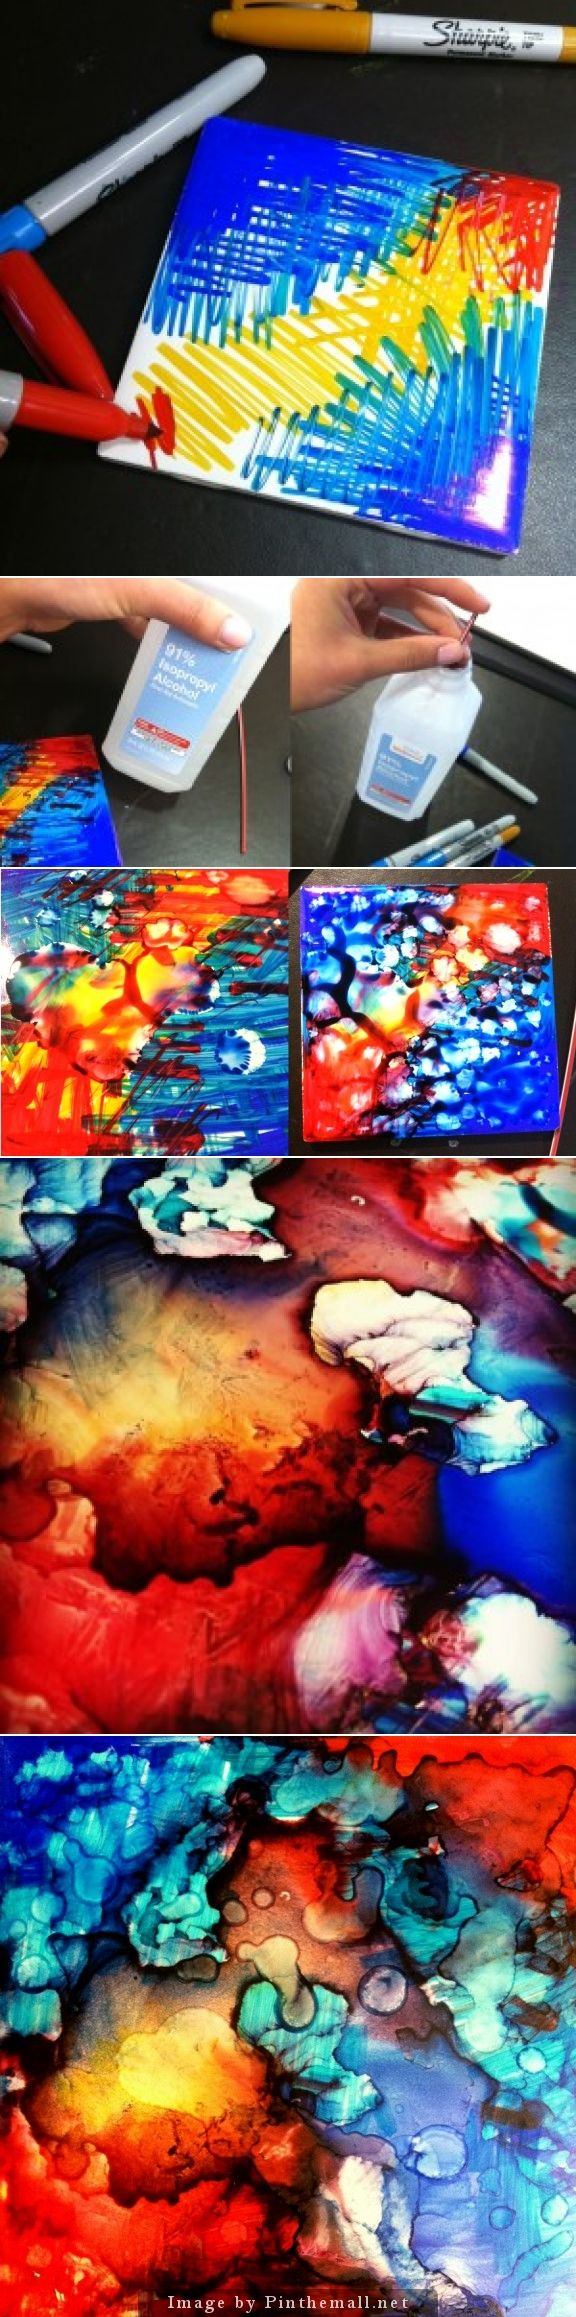 A Sharpie and alcohol art project on canvas with incredible results! Fun project for the kids to make